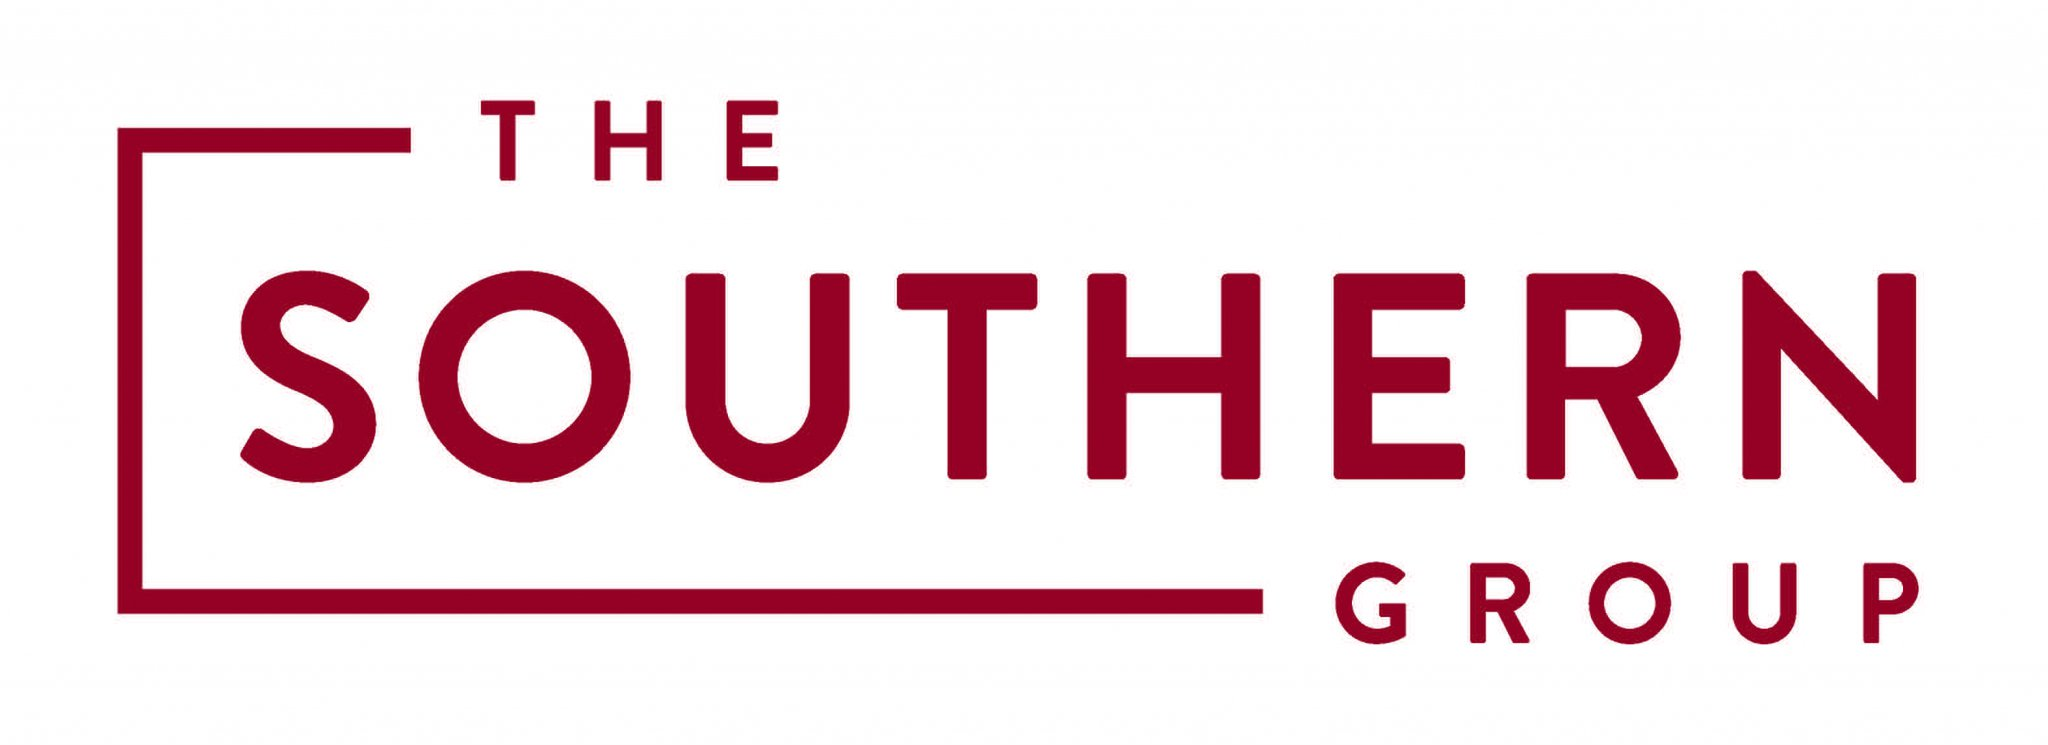 southern group logo